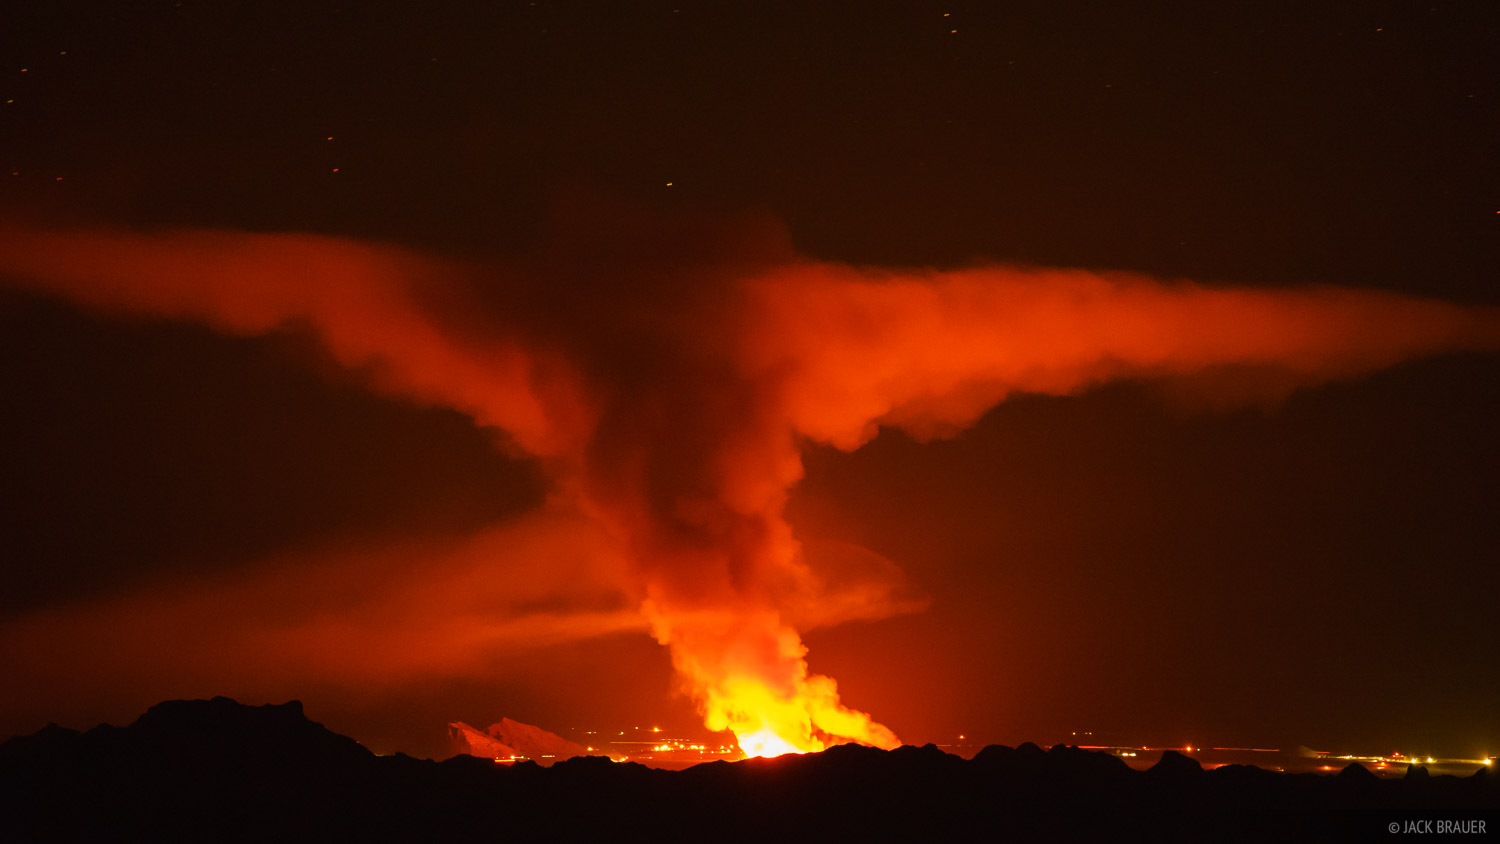 Arizona, Kofa National Wildlife Refuge, Signal Peak, wildfire, Kofa Mountains, photo